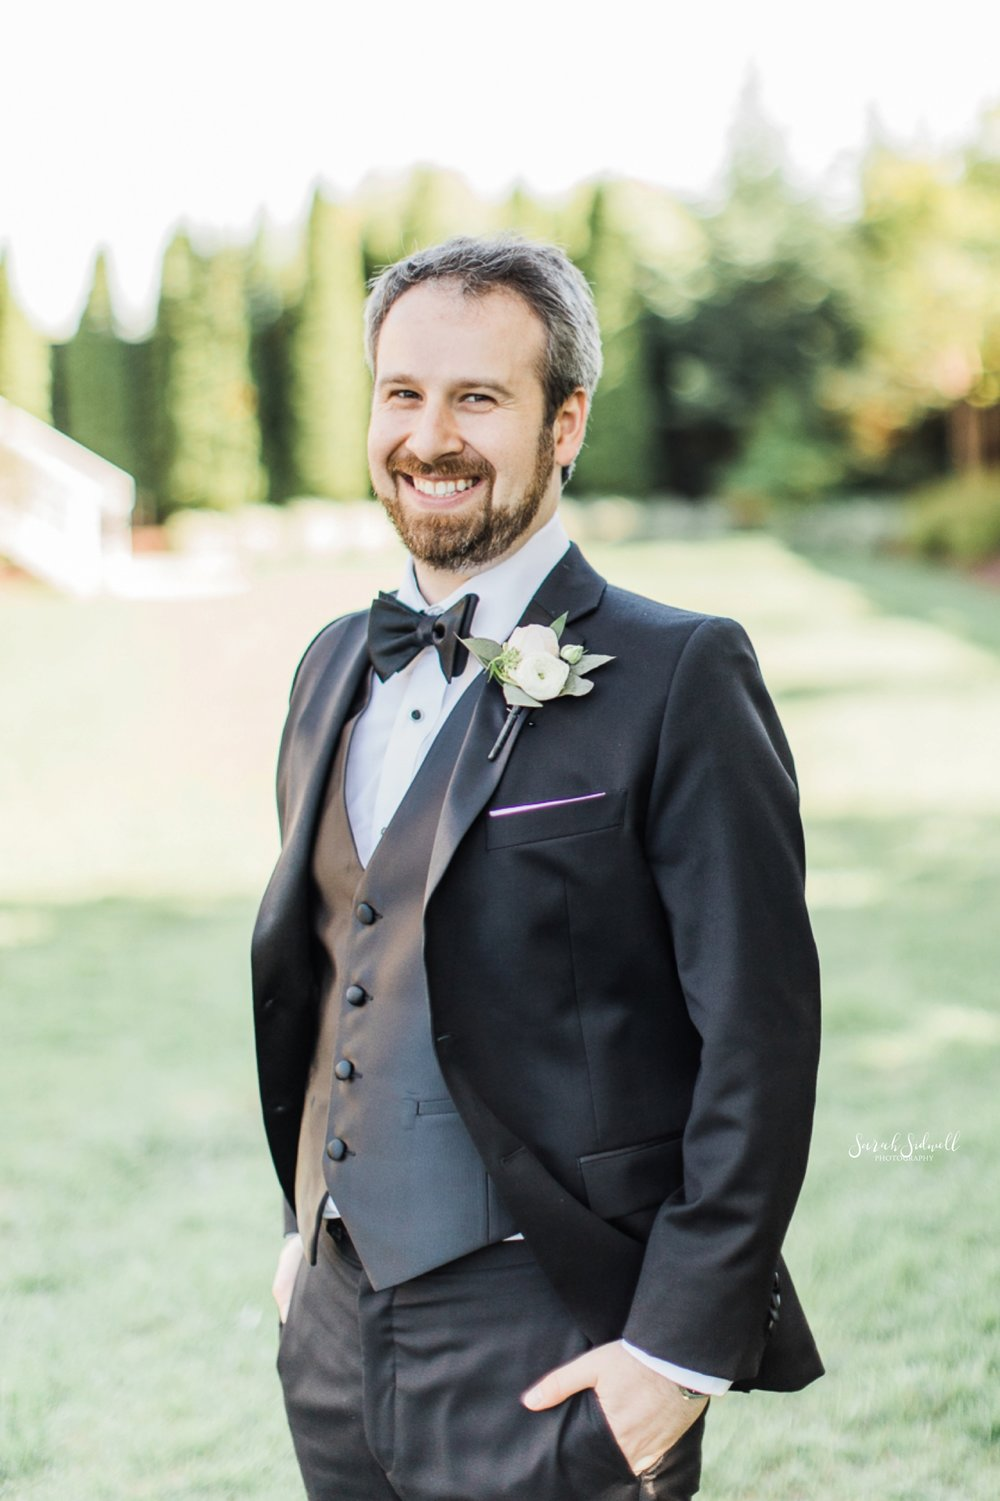 A man wears a tux for his wedding and puts his hand in his pocket.